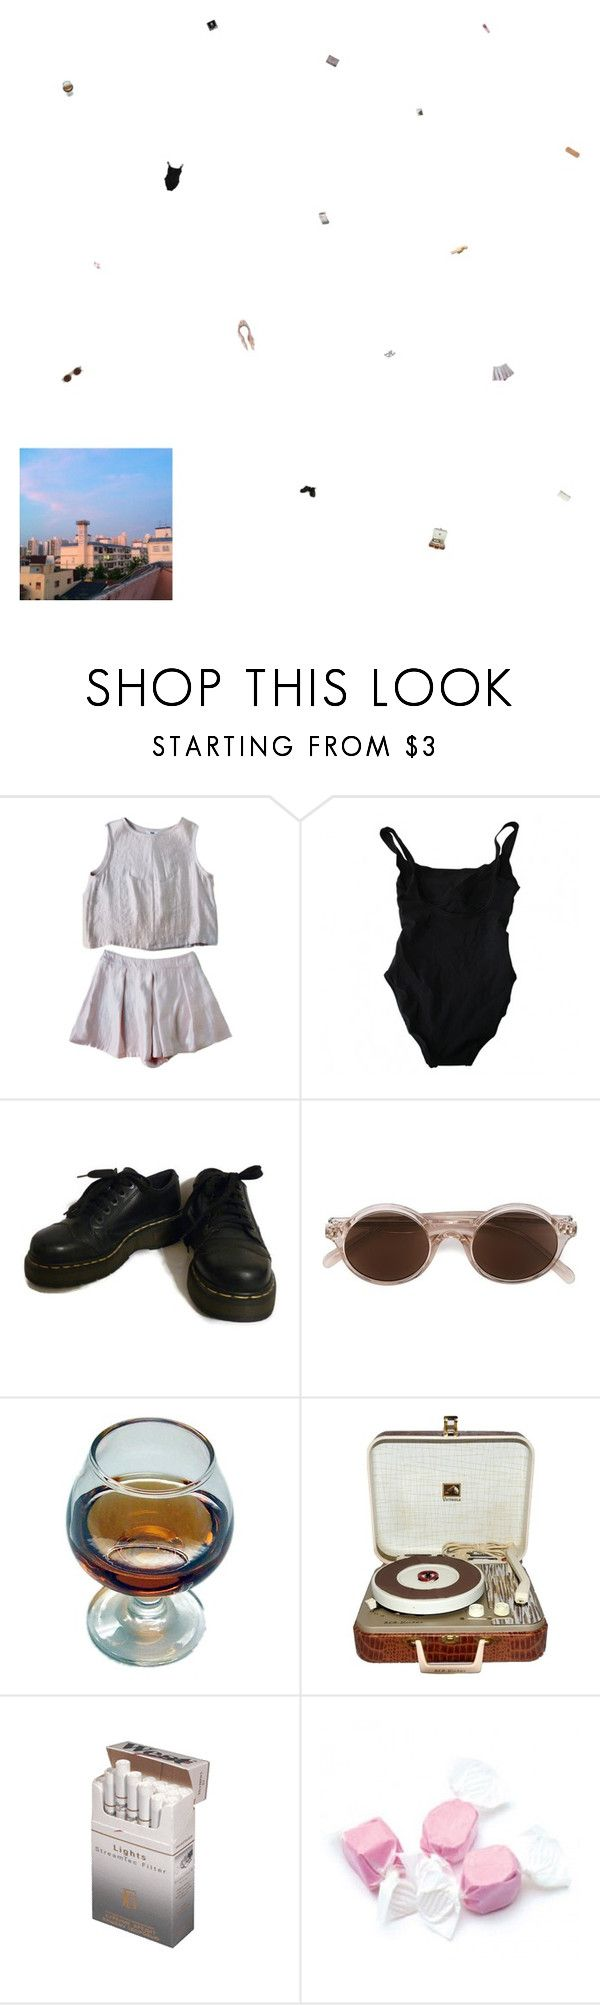 """""""we could go back to woodstock where they don't know we are"""" by the-soft-parade ❤ liked on Polyvore featuring Eres, Dr. Martens, NARS Cosmetics, CÉLINE, RCA, CO, Salt Water Sandals and vintage"""